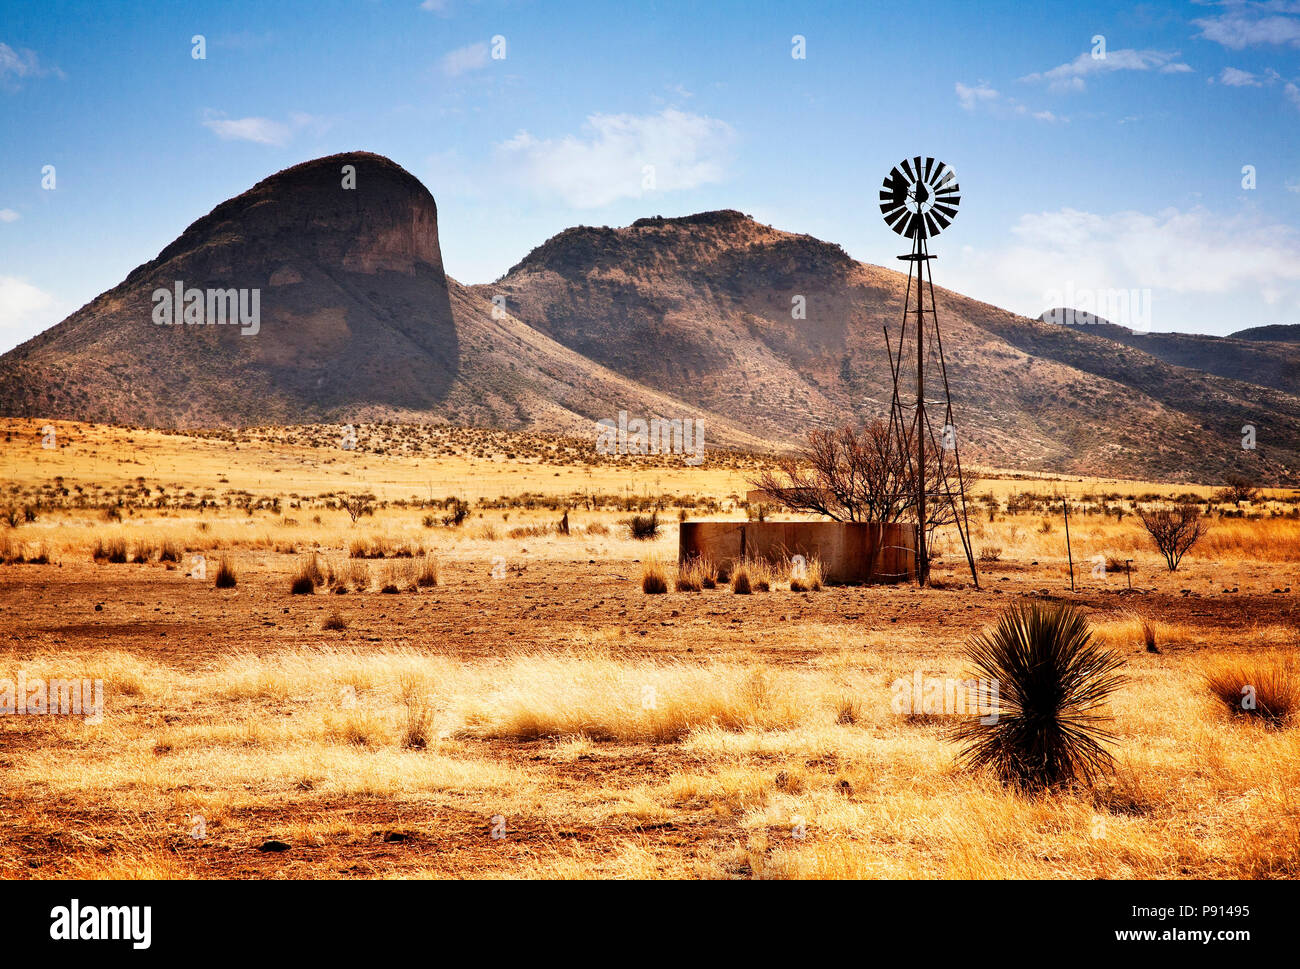 A wind wheel pumps water for livestock in dry pastureland in the southeast desert of Arizona. - Stock Image